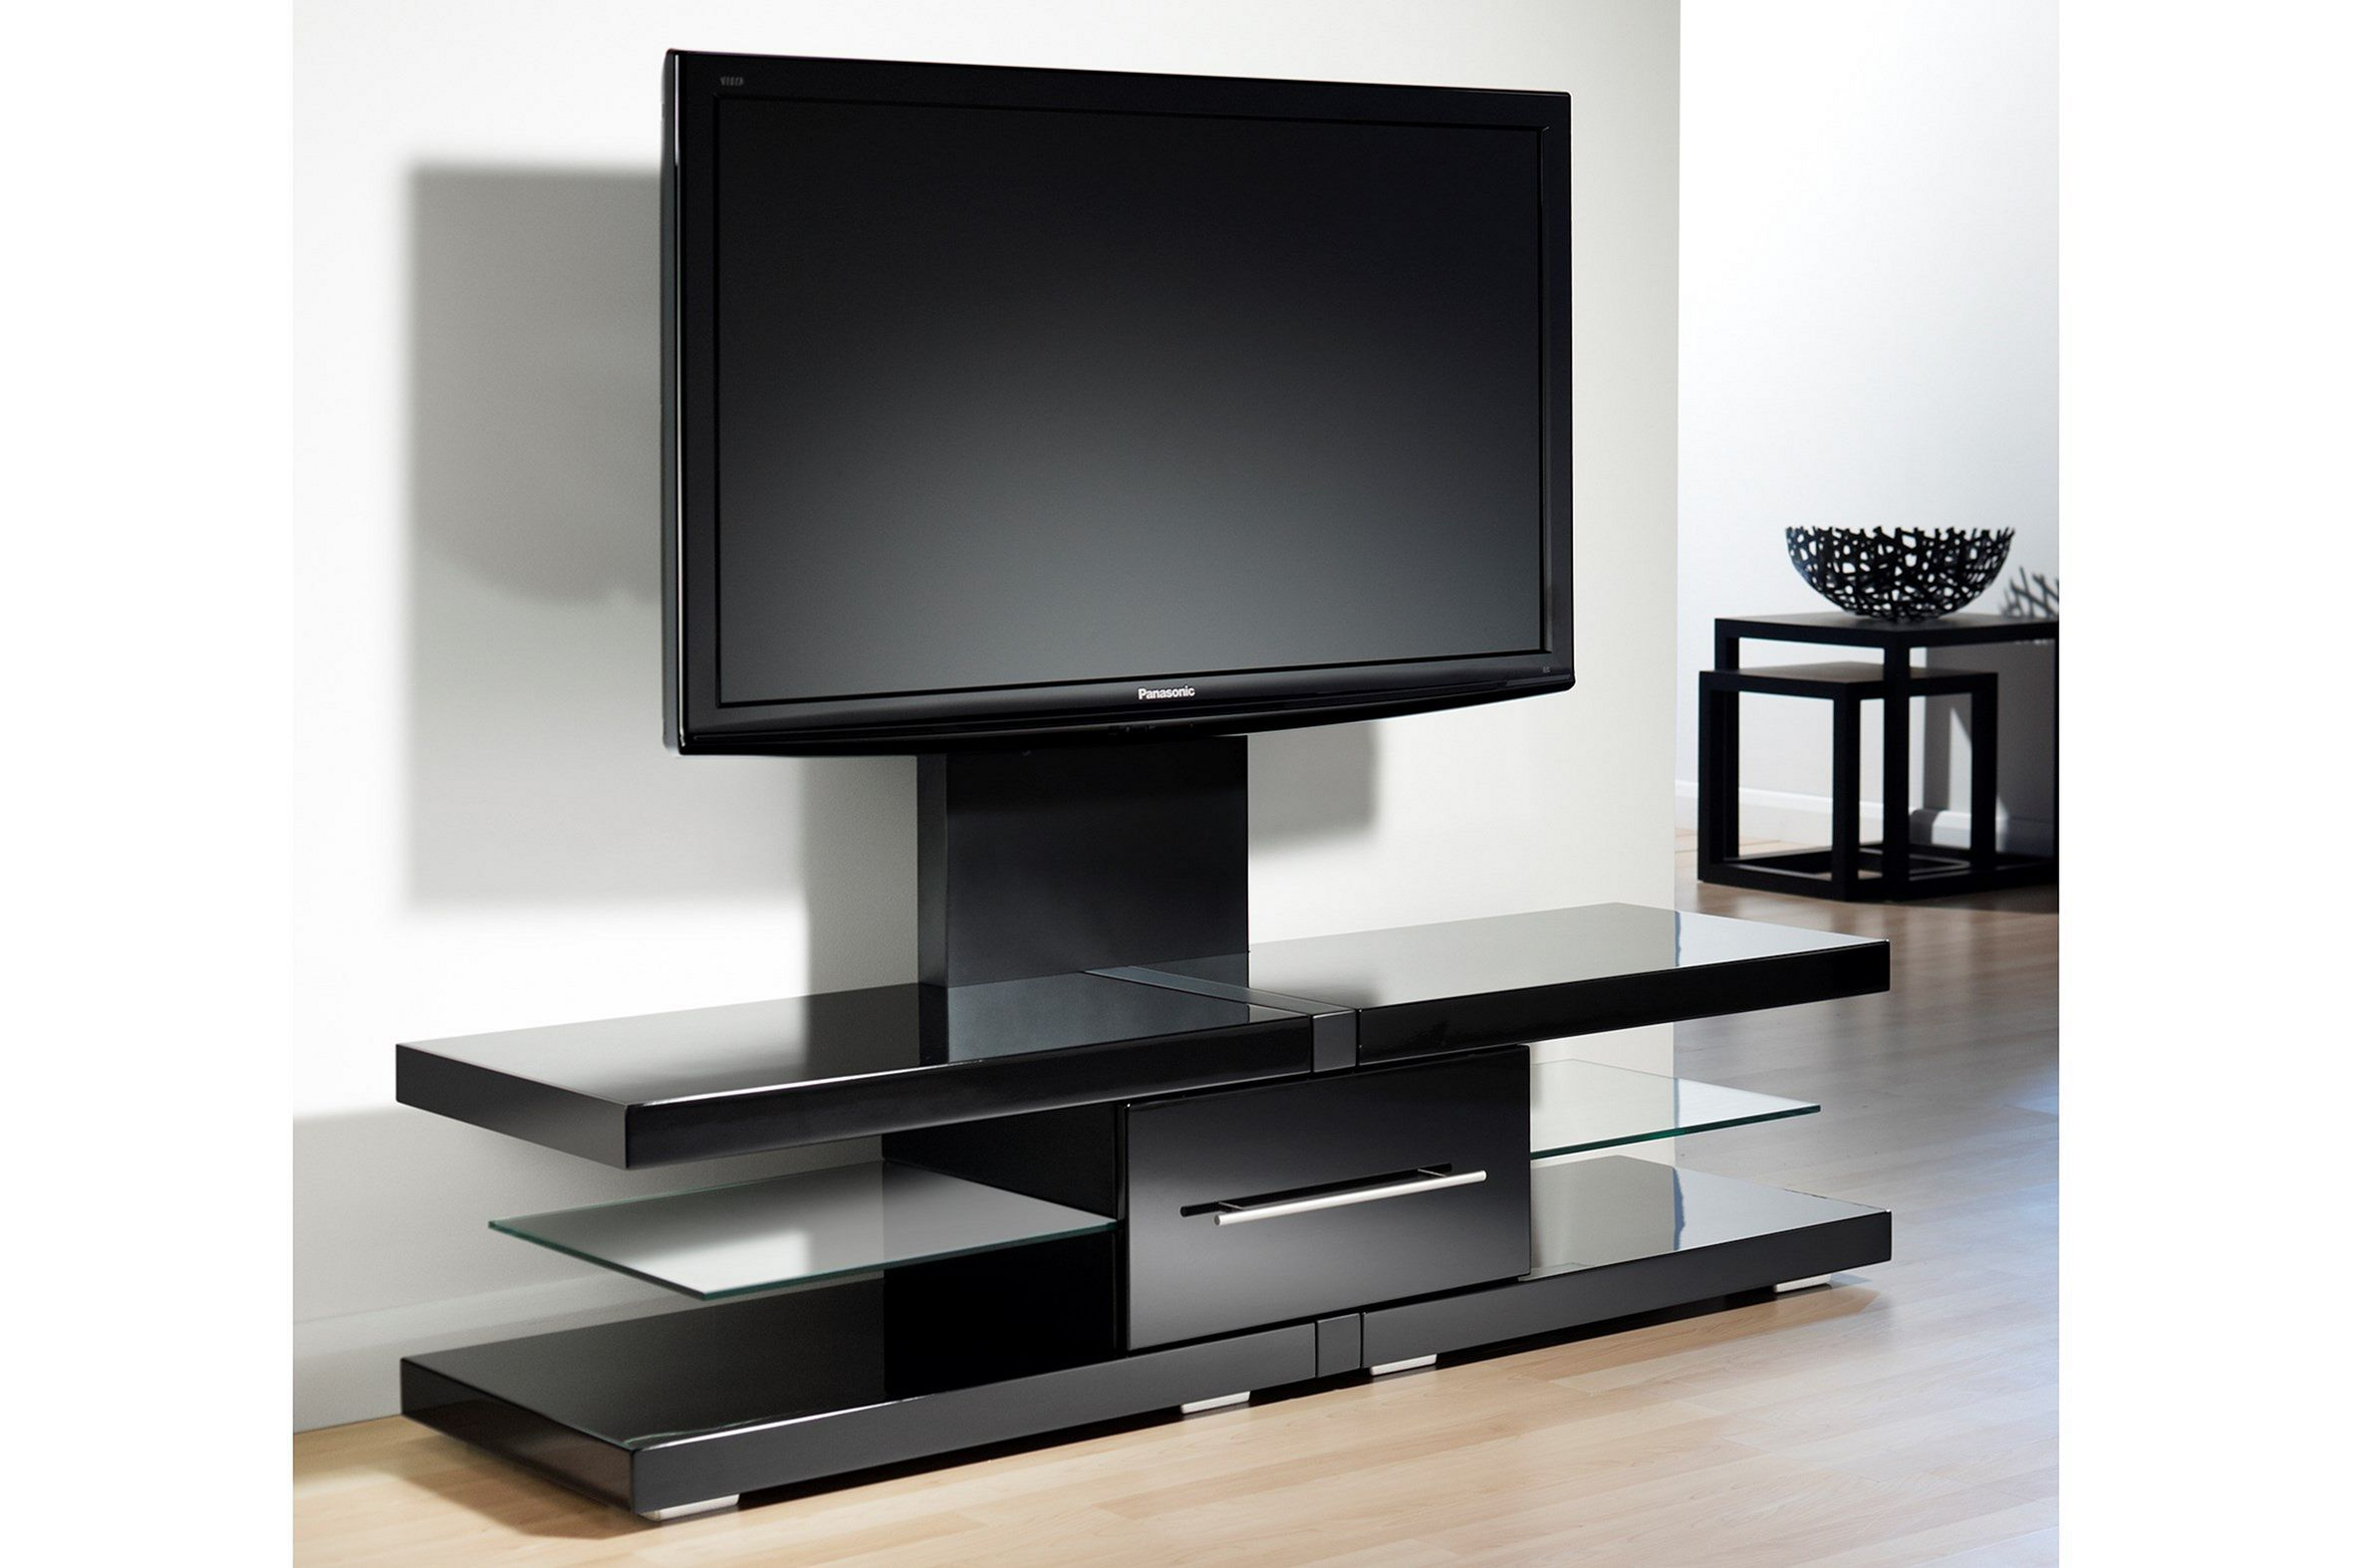 Panasonic Tv Meubel.28 Amazing Modern Tv Cabinets Design For Your Home Inspiration